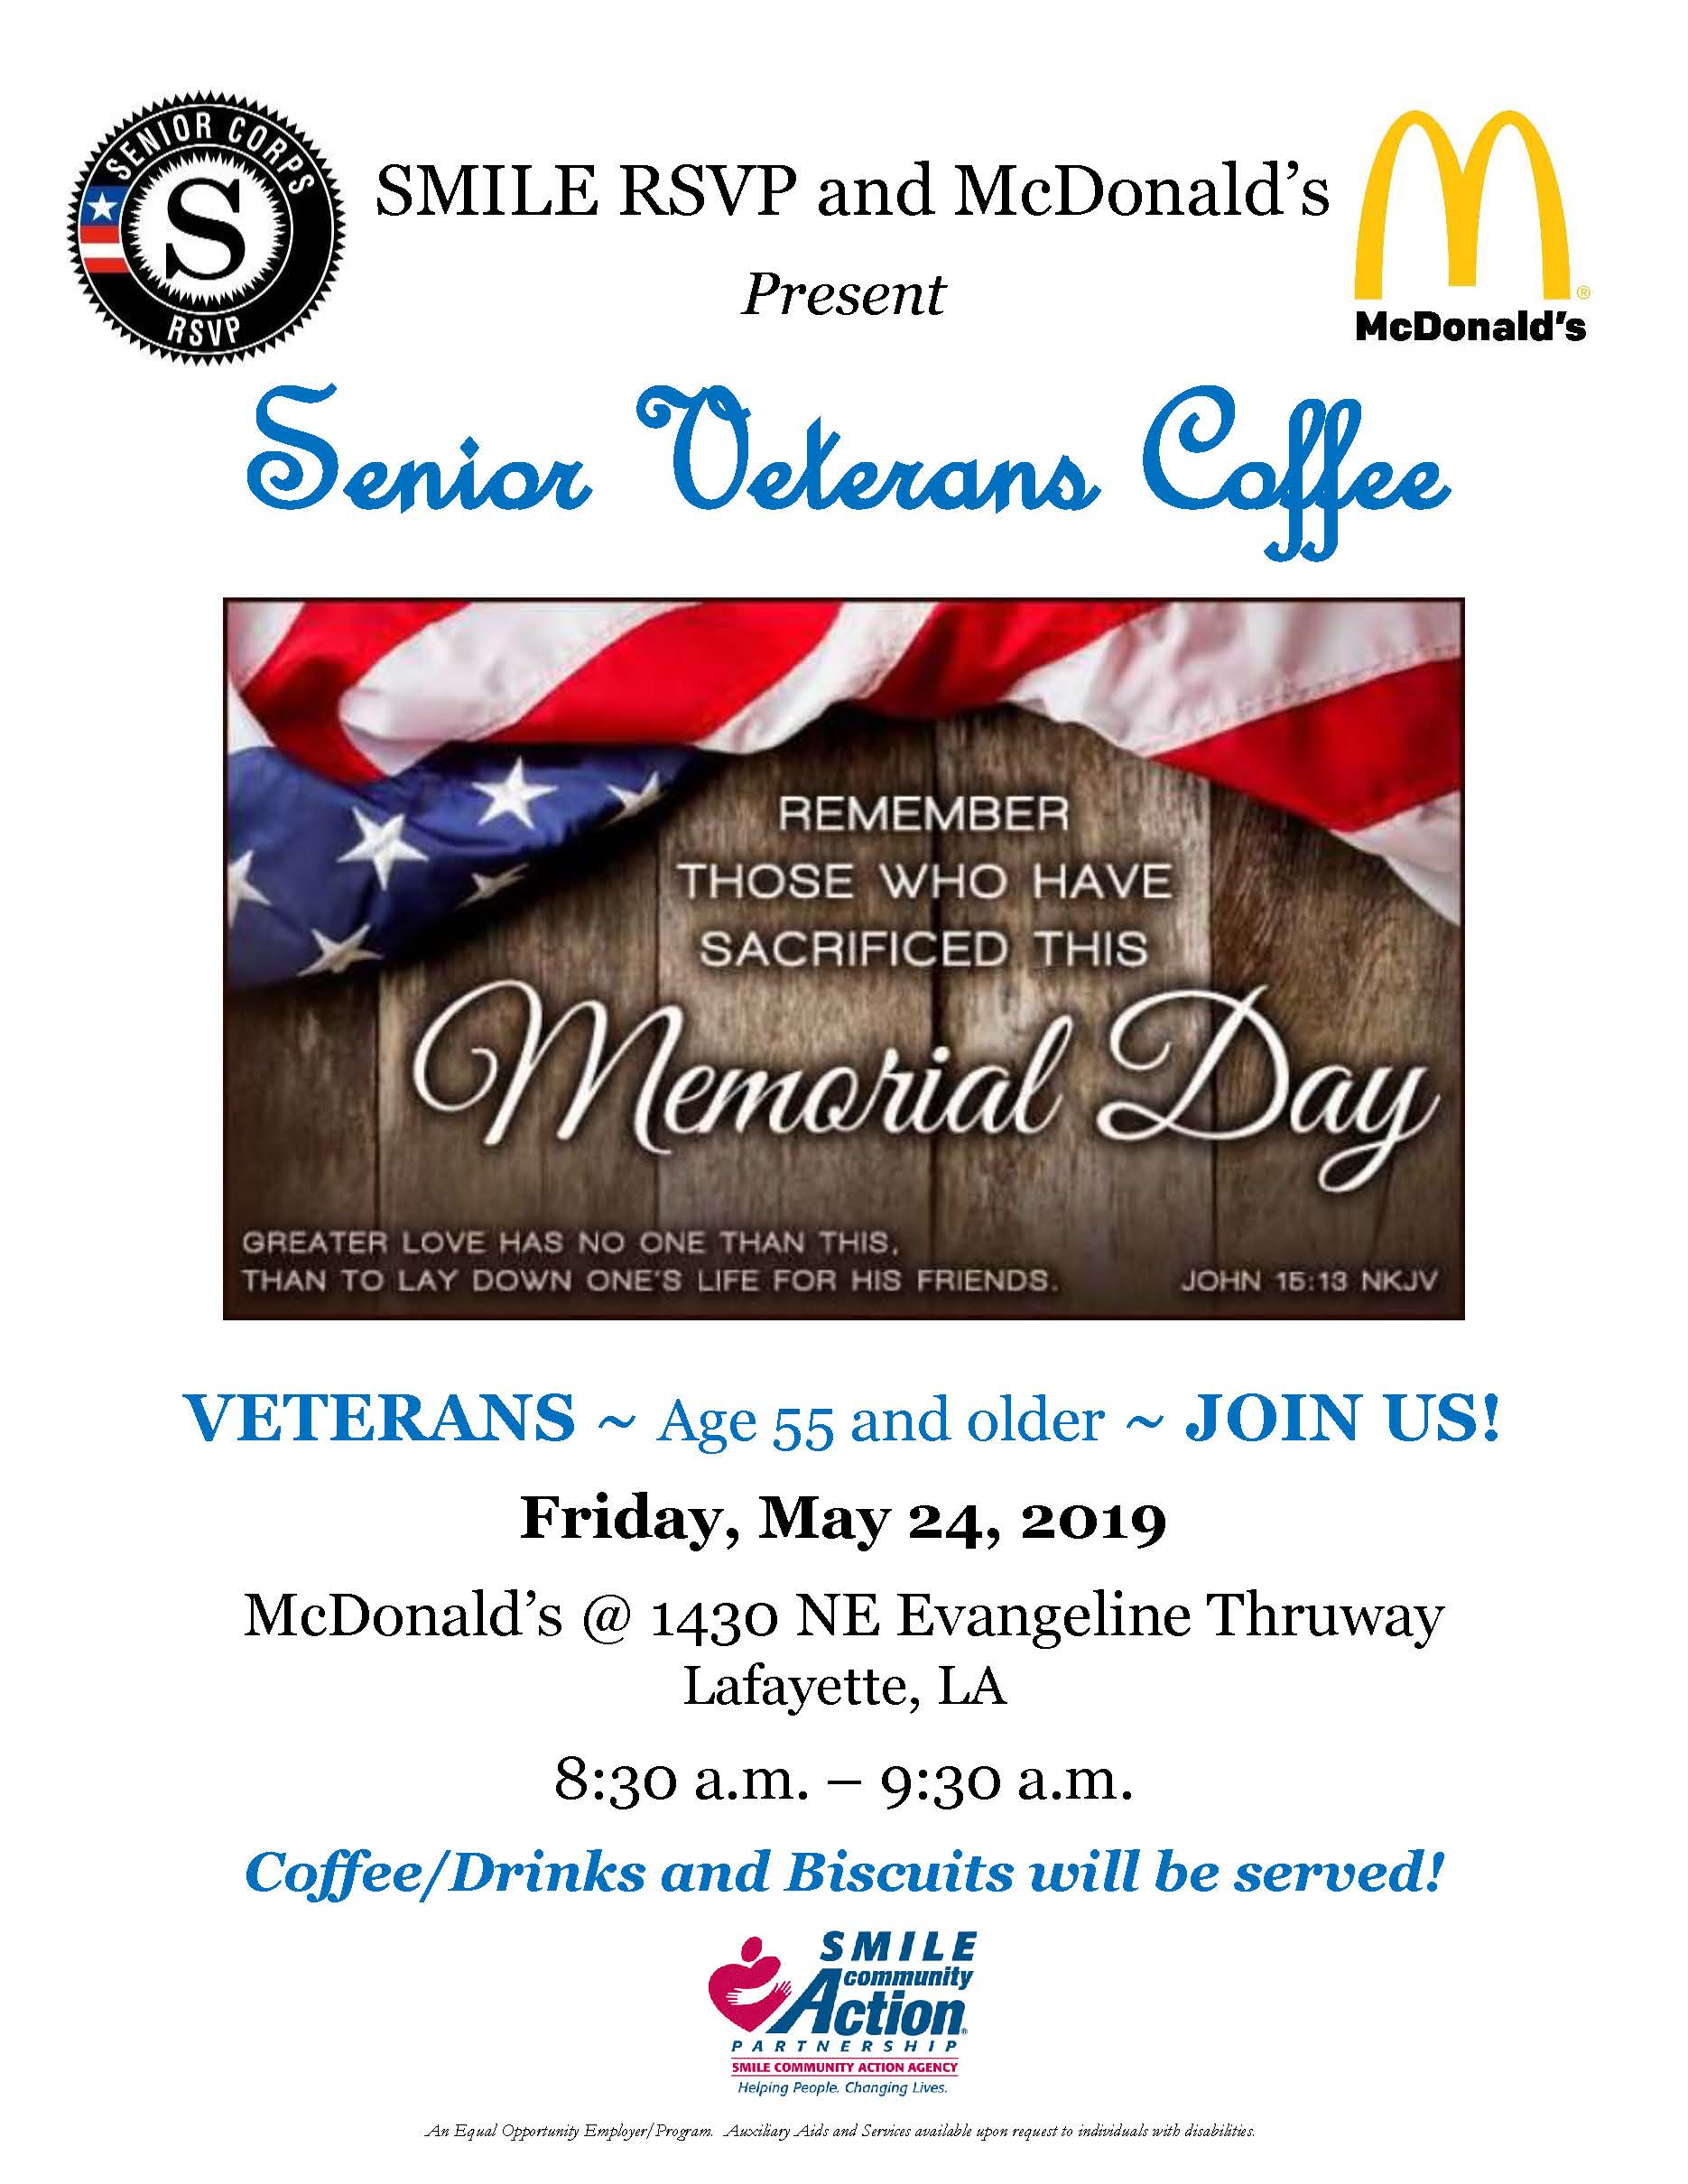 RSVP2019VeteransCoffee